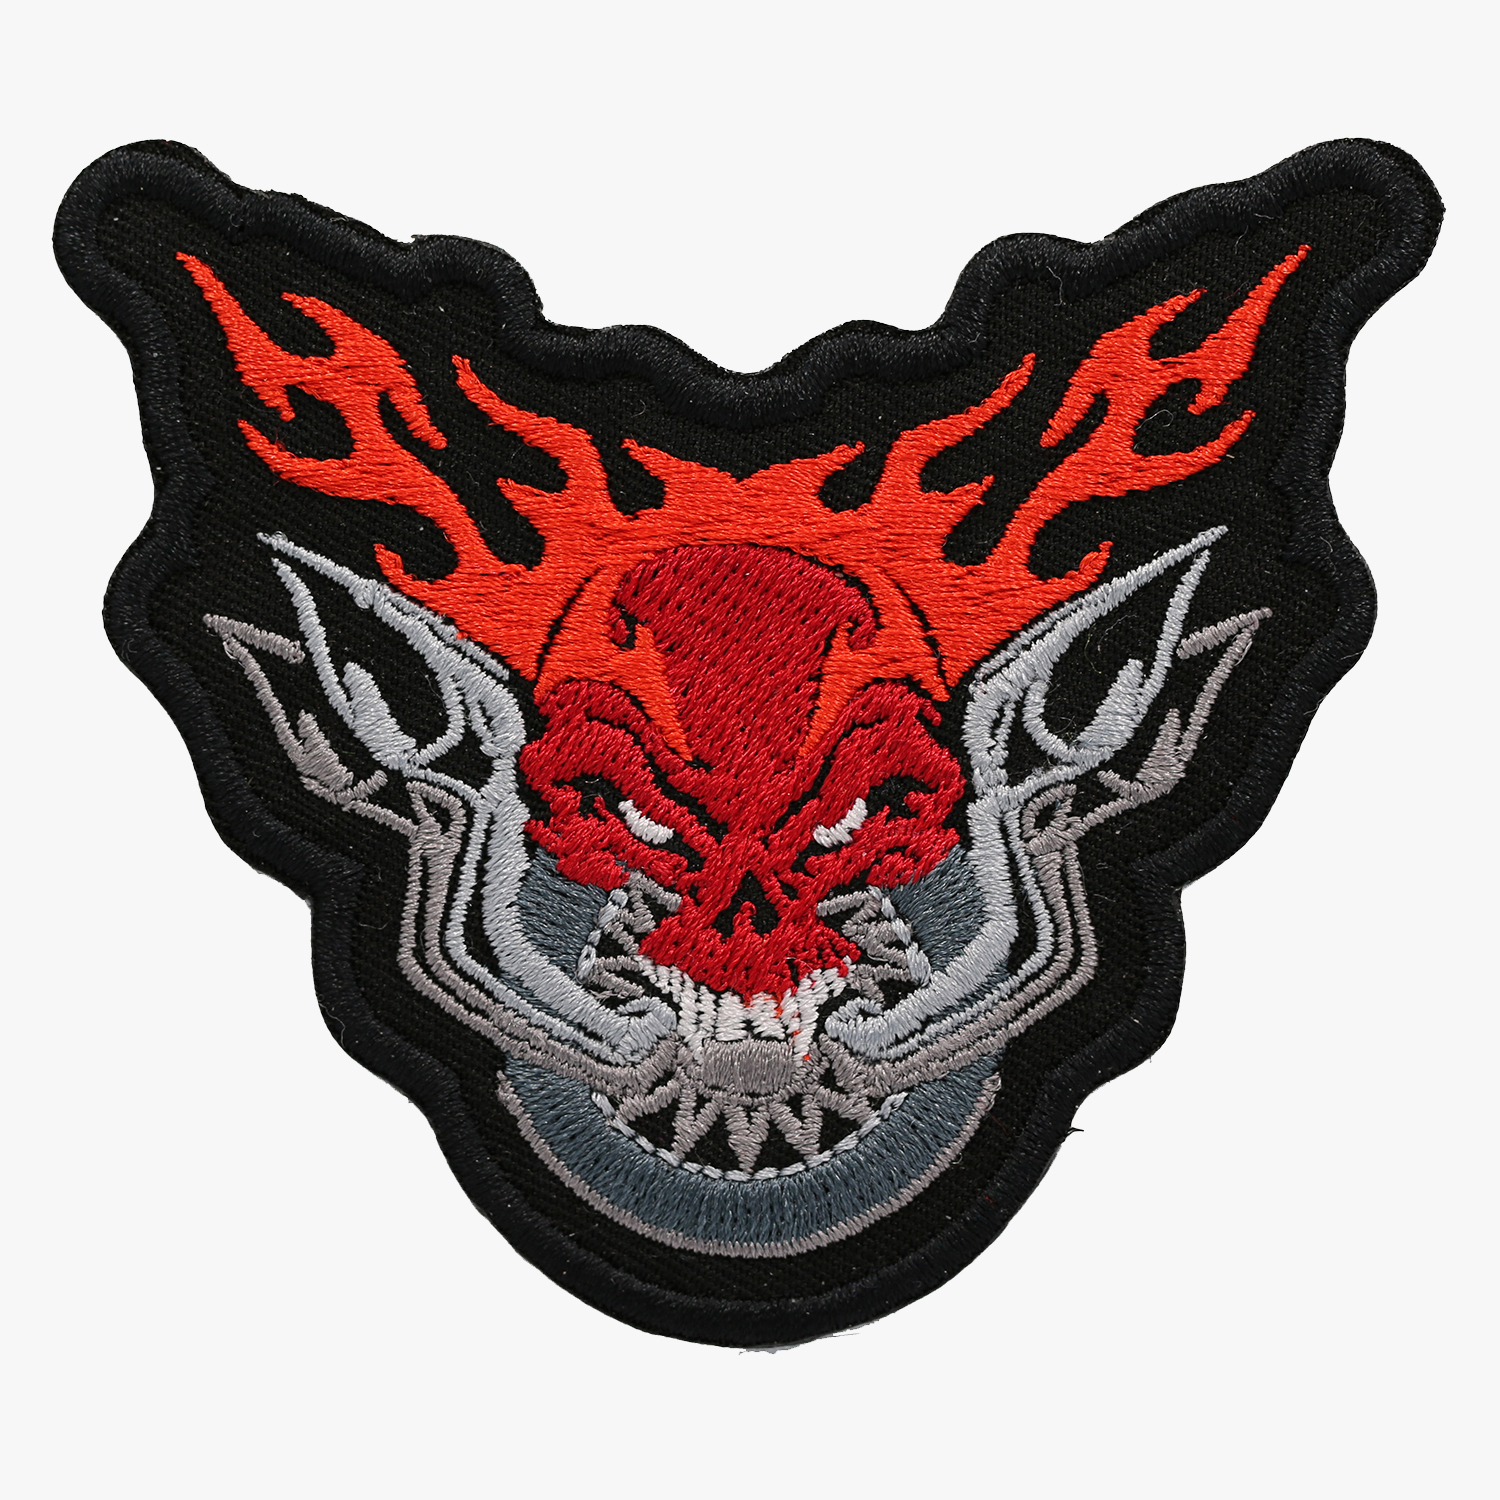 FLAME PIPES & SKULL Biker Vest Embroidered Patch